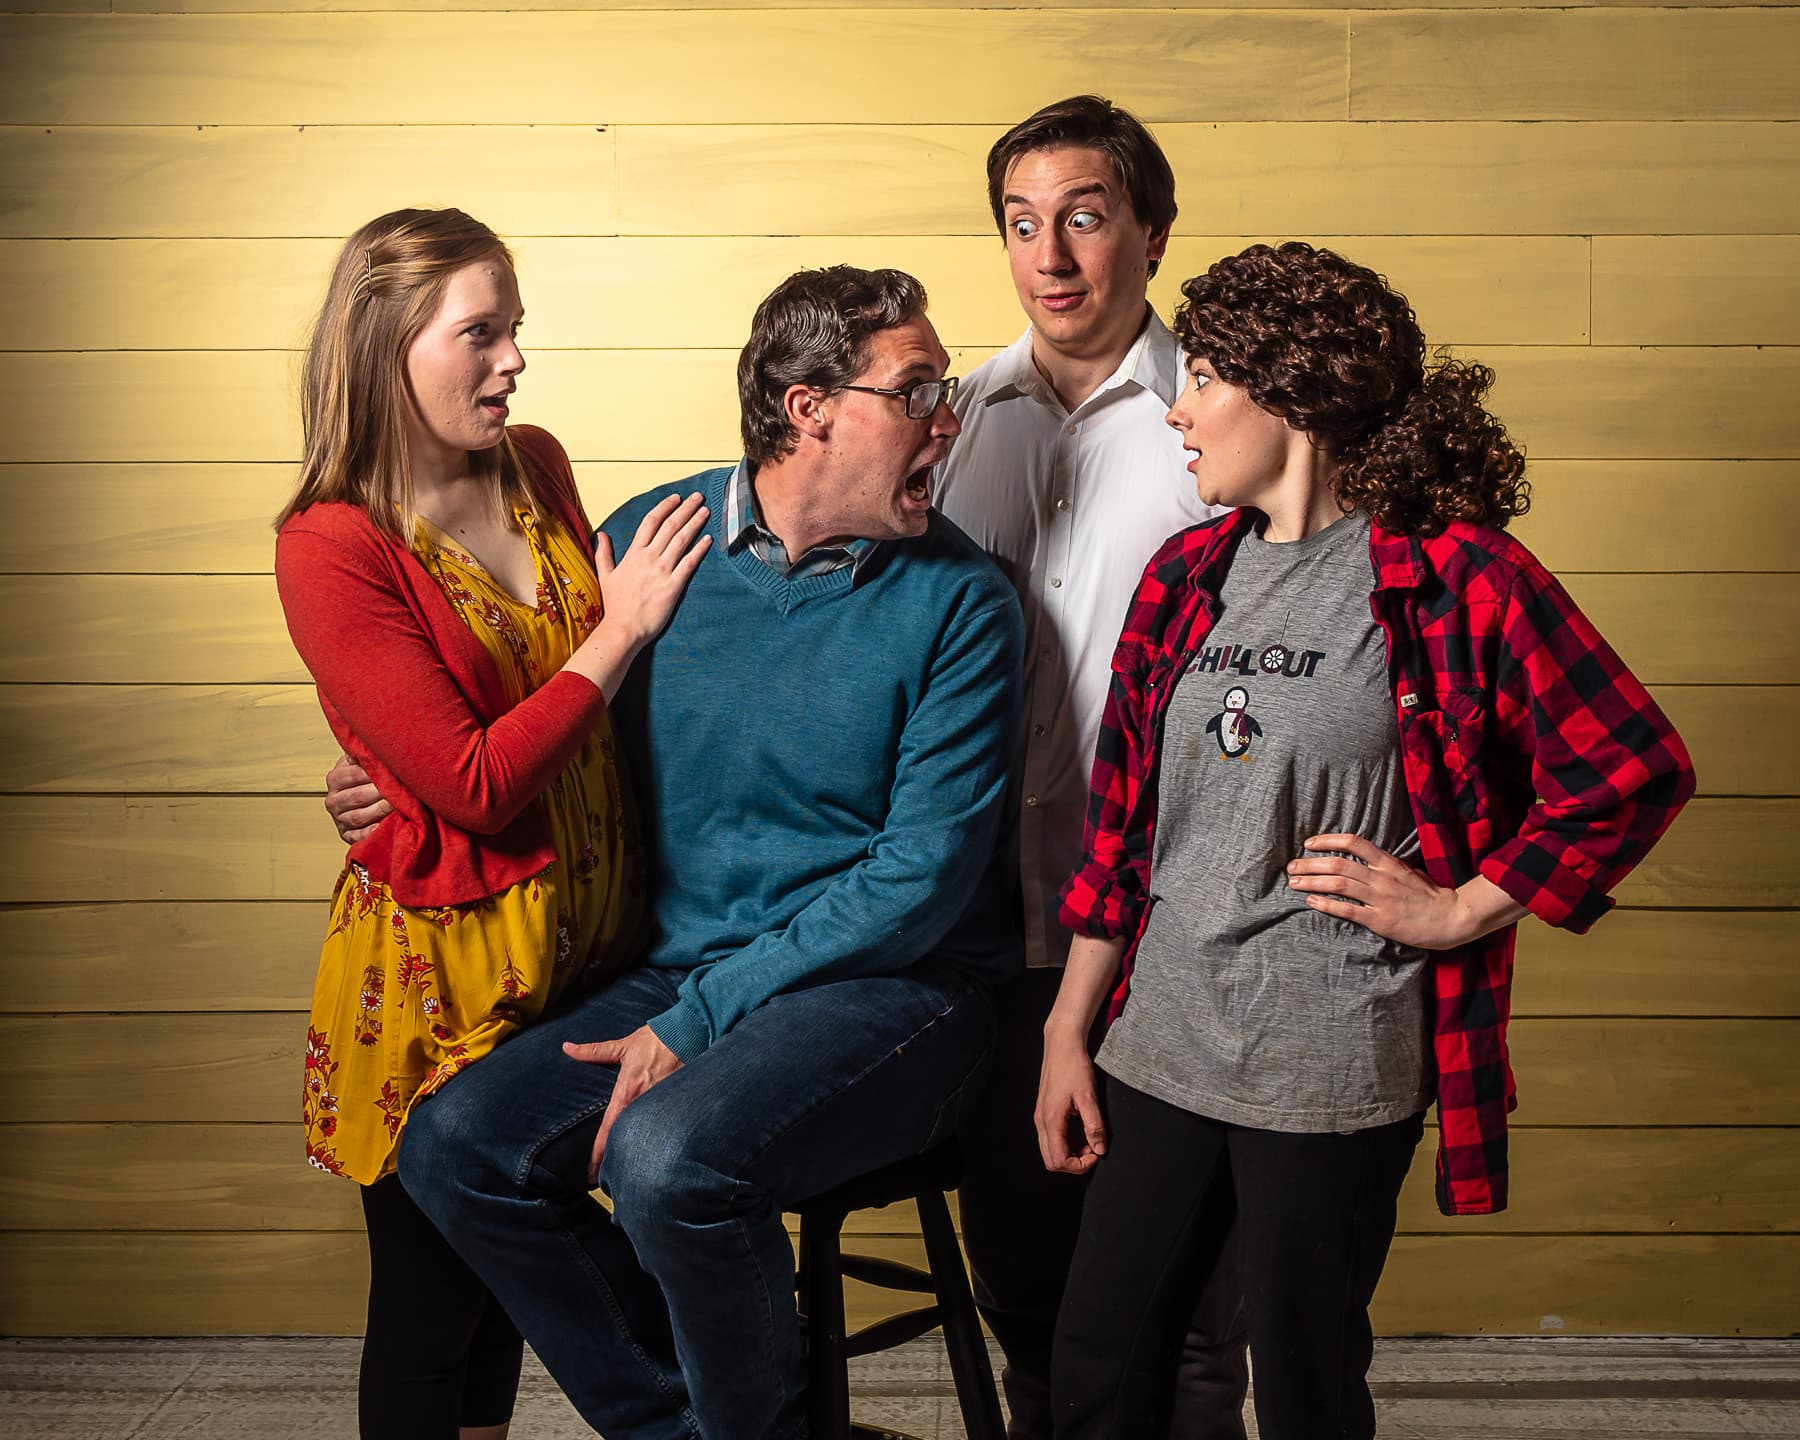 Full Cast (L to R): Molly Mayne as Melody, Jon Meeker as Liam, Michael Kranick as Jonah and Anna Steuerman as Daphna (Photo Credit: Bruce F. Press Photography)